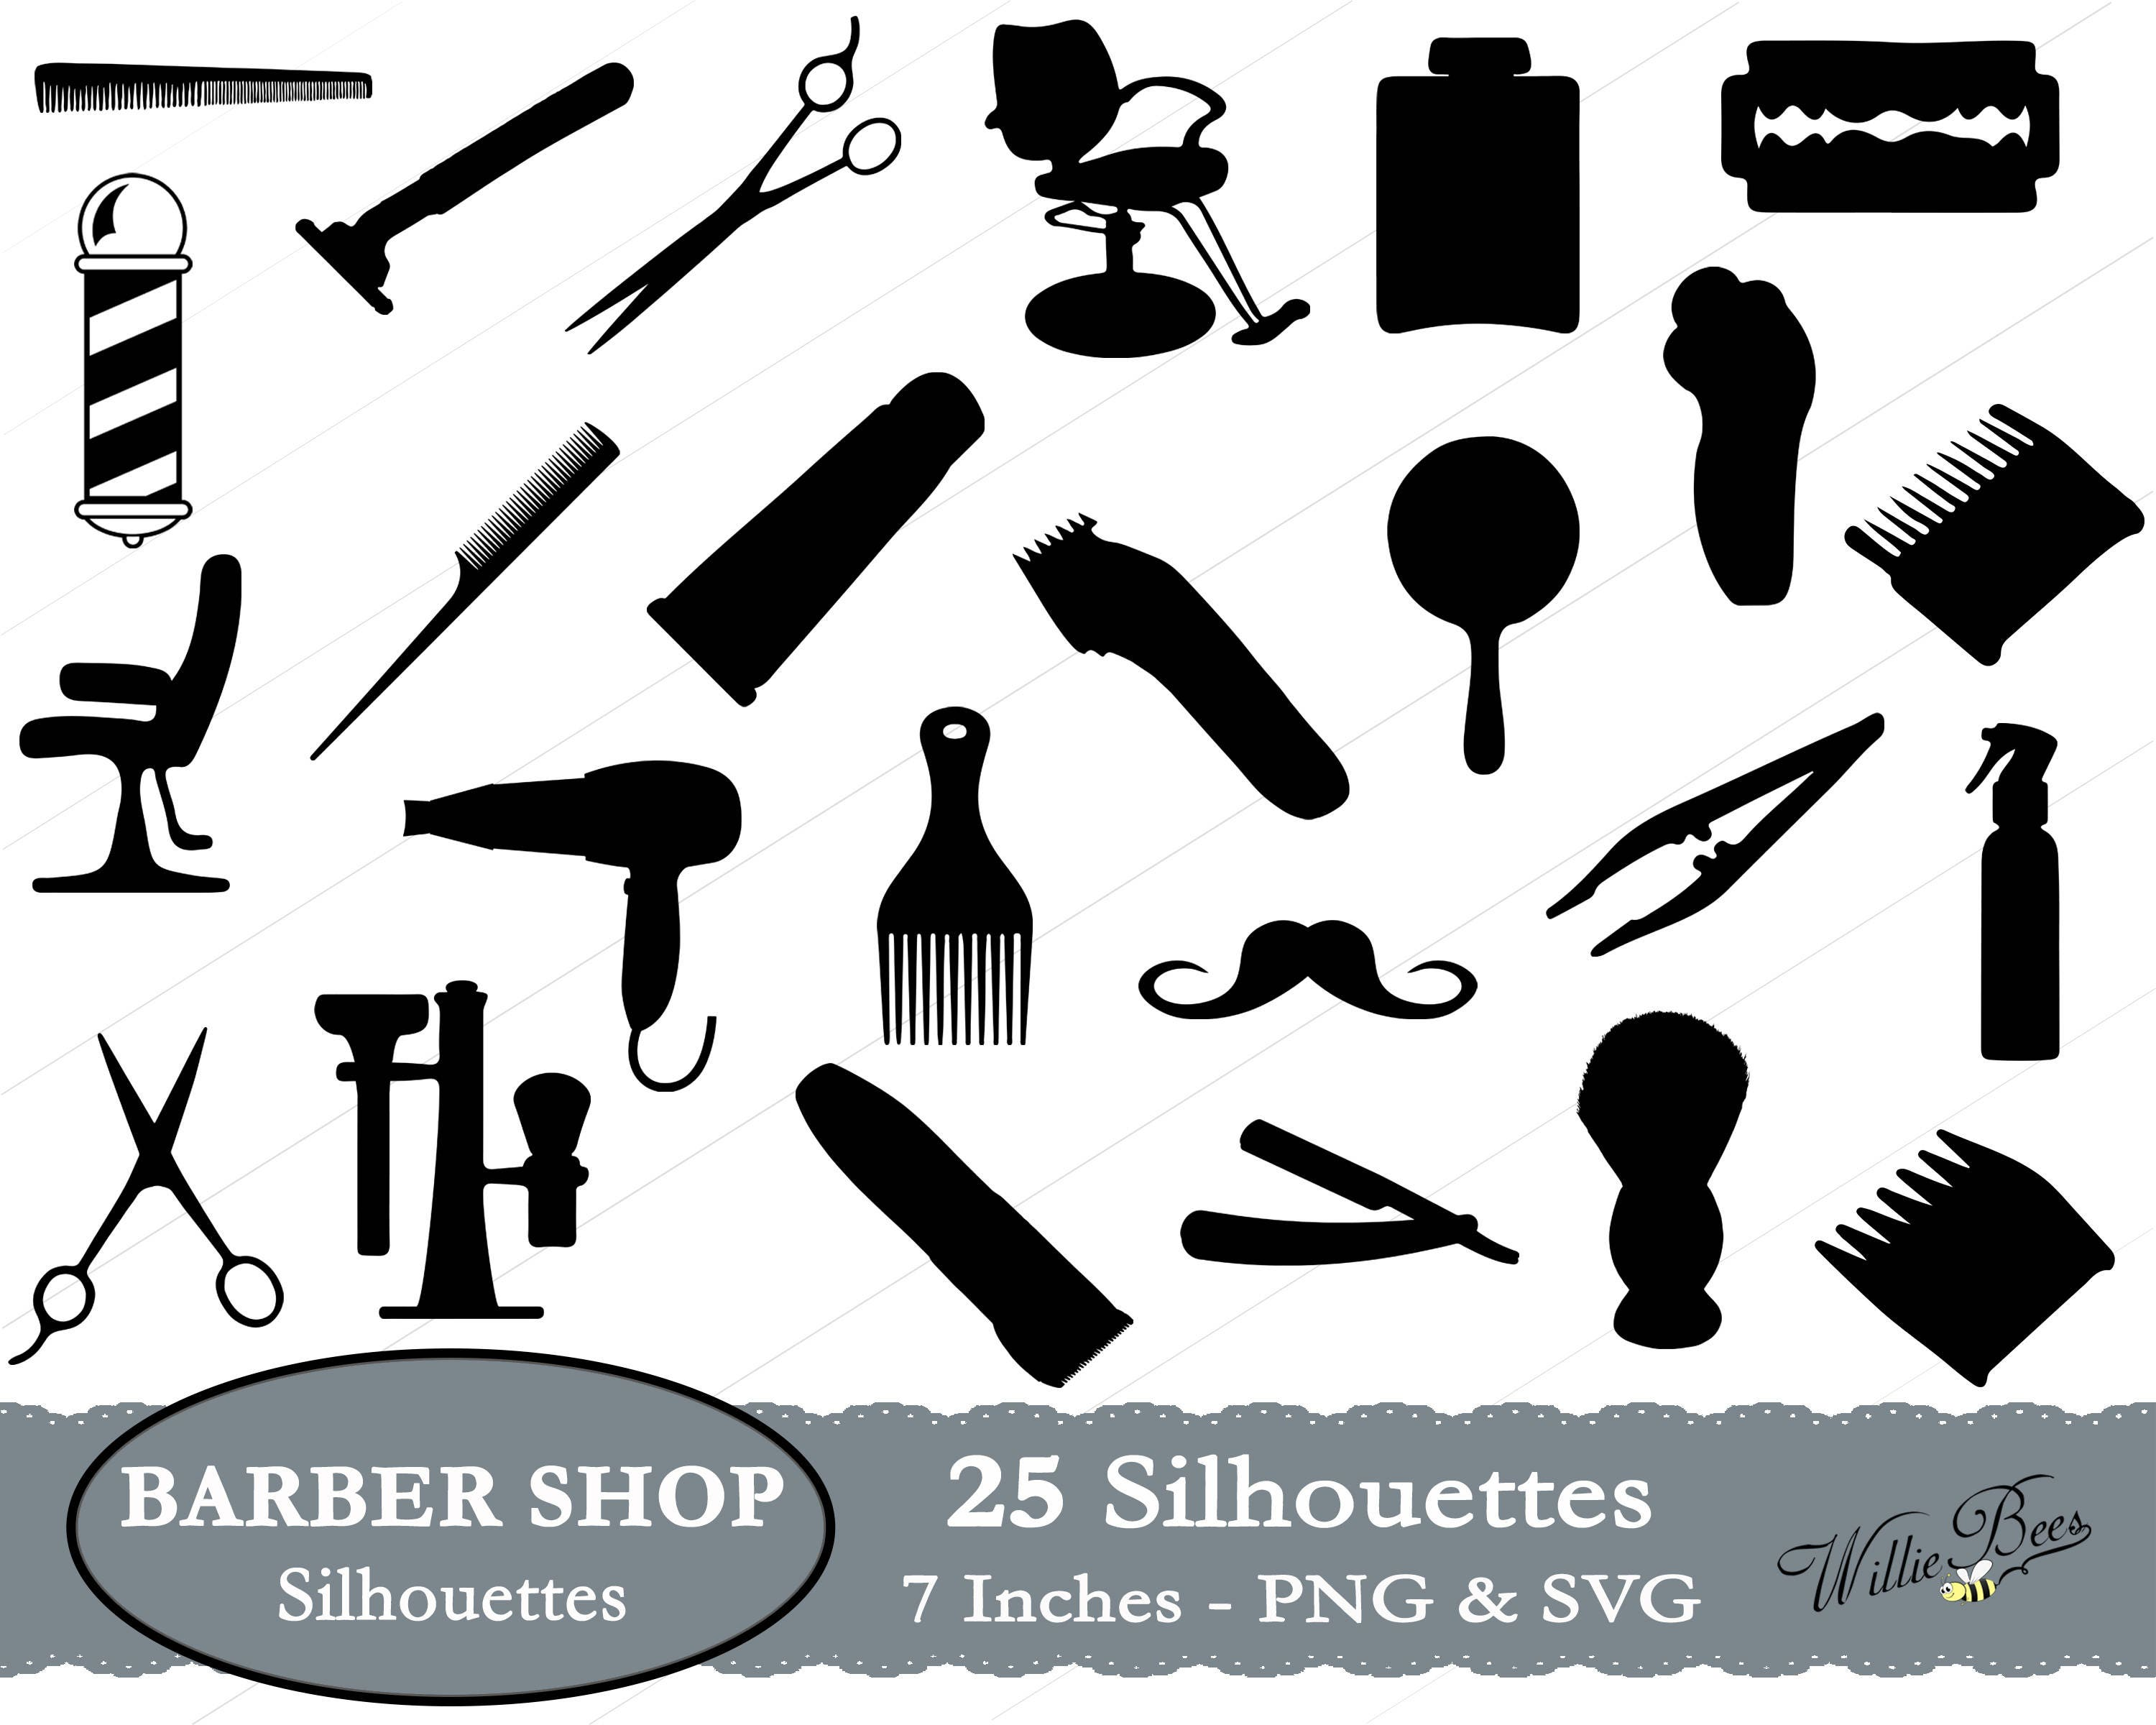 Barber Shop Silhouette Clipart Images - 7 inches - PNG ...